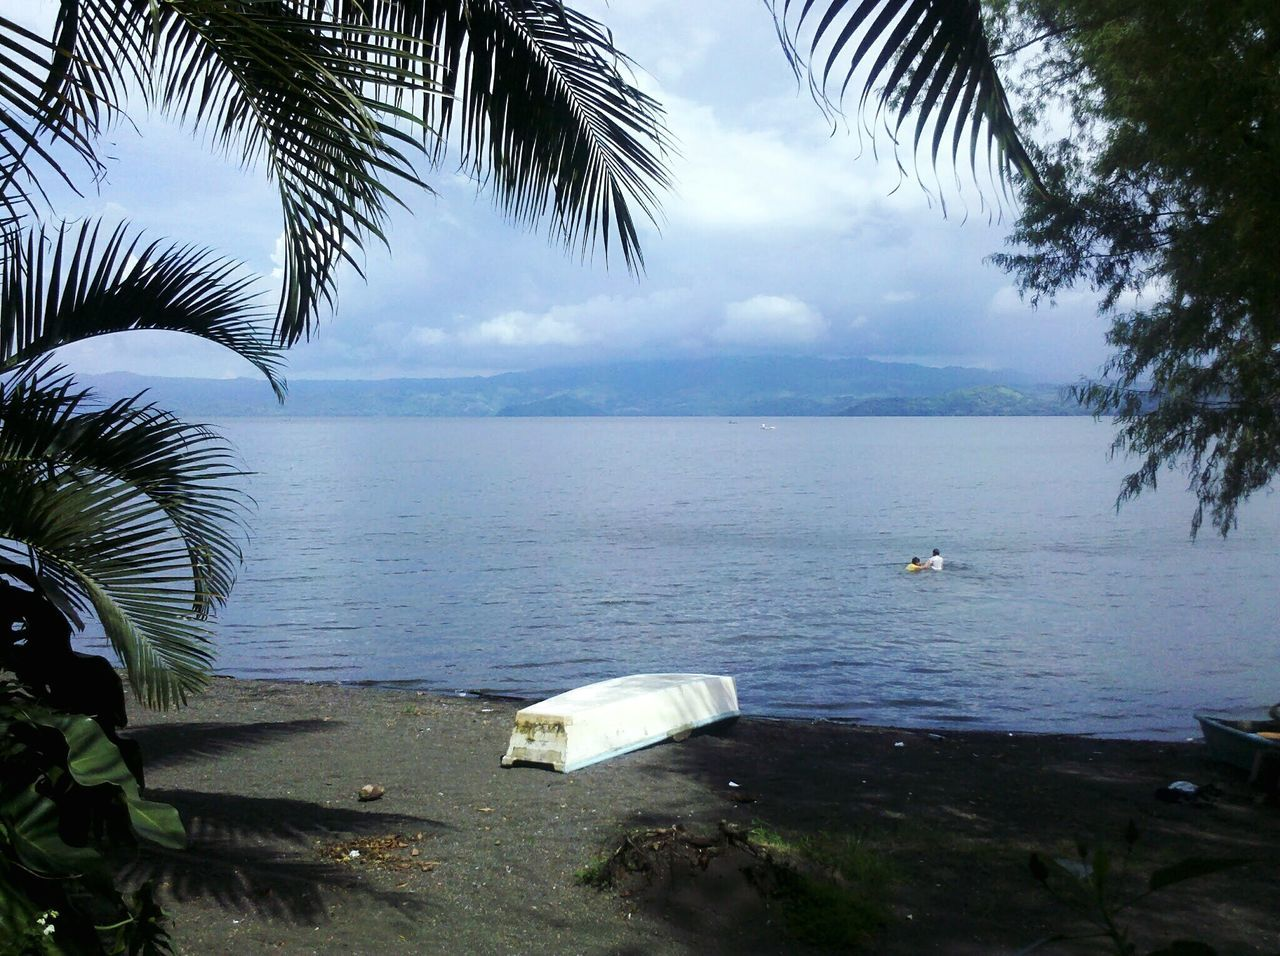 Tranquil Scene Scenics Cloud - Sky Tropical Climate Tranquility Cloud Beauty In Nature Lagoon Catemaco Shadow Mobile Photography Taking Photos Old Phone Photo Personal Perspective Landscapes Great Outdoors Landscape Outdoors Live For The Story